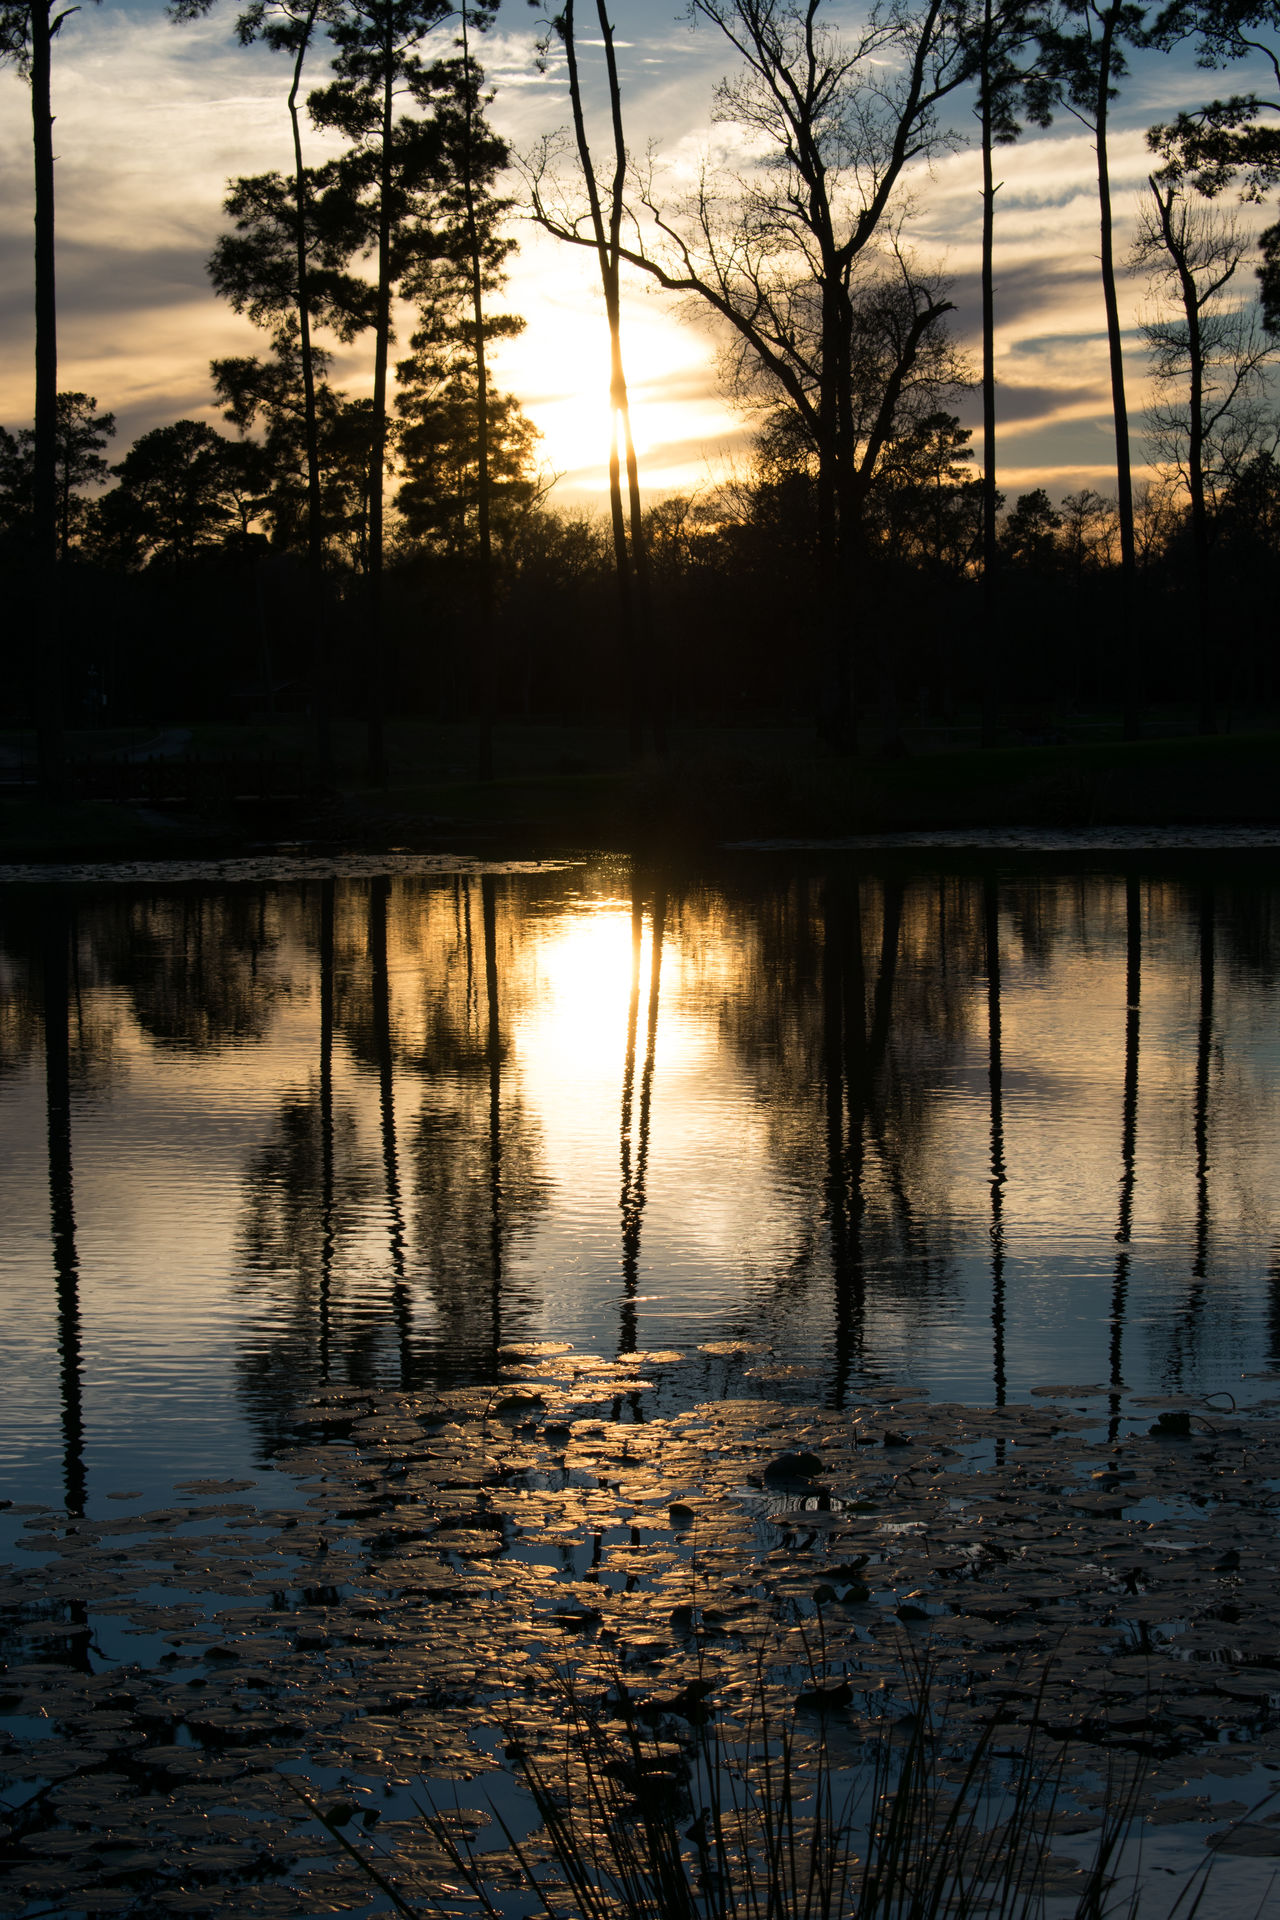 Beauty In Nature Cloud - Sky Day Lake Nature No People Outdoors Reflection Scenics Silhouette Sky Sunset Tranquil Scene Tranquility Tree Water